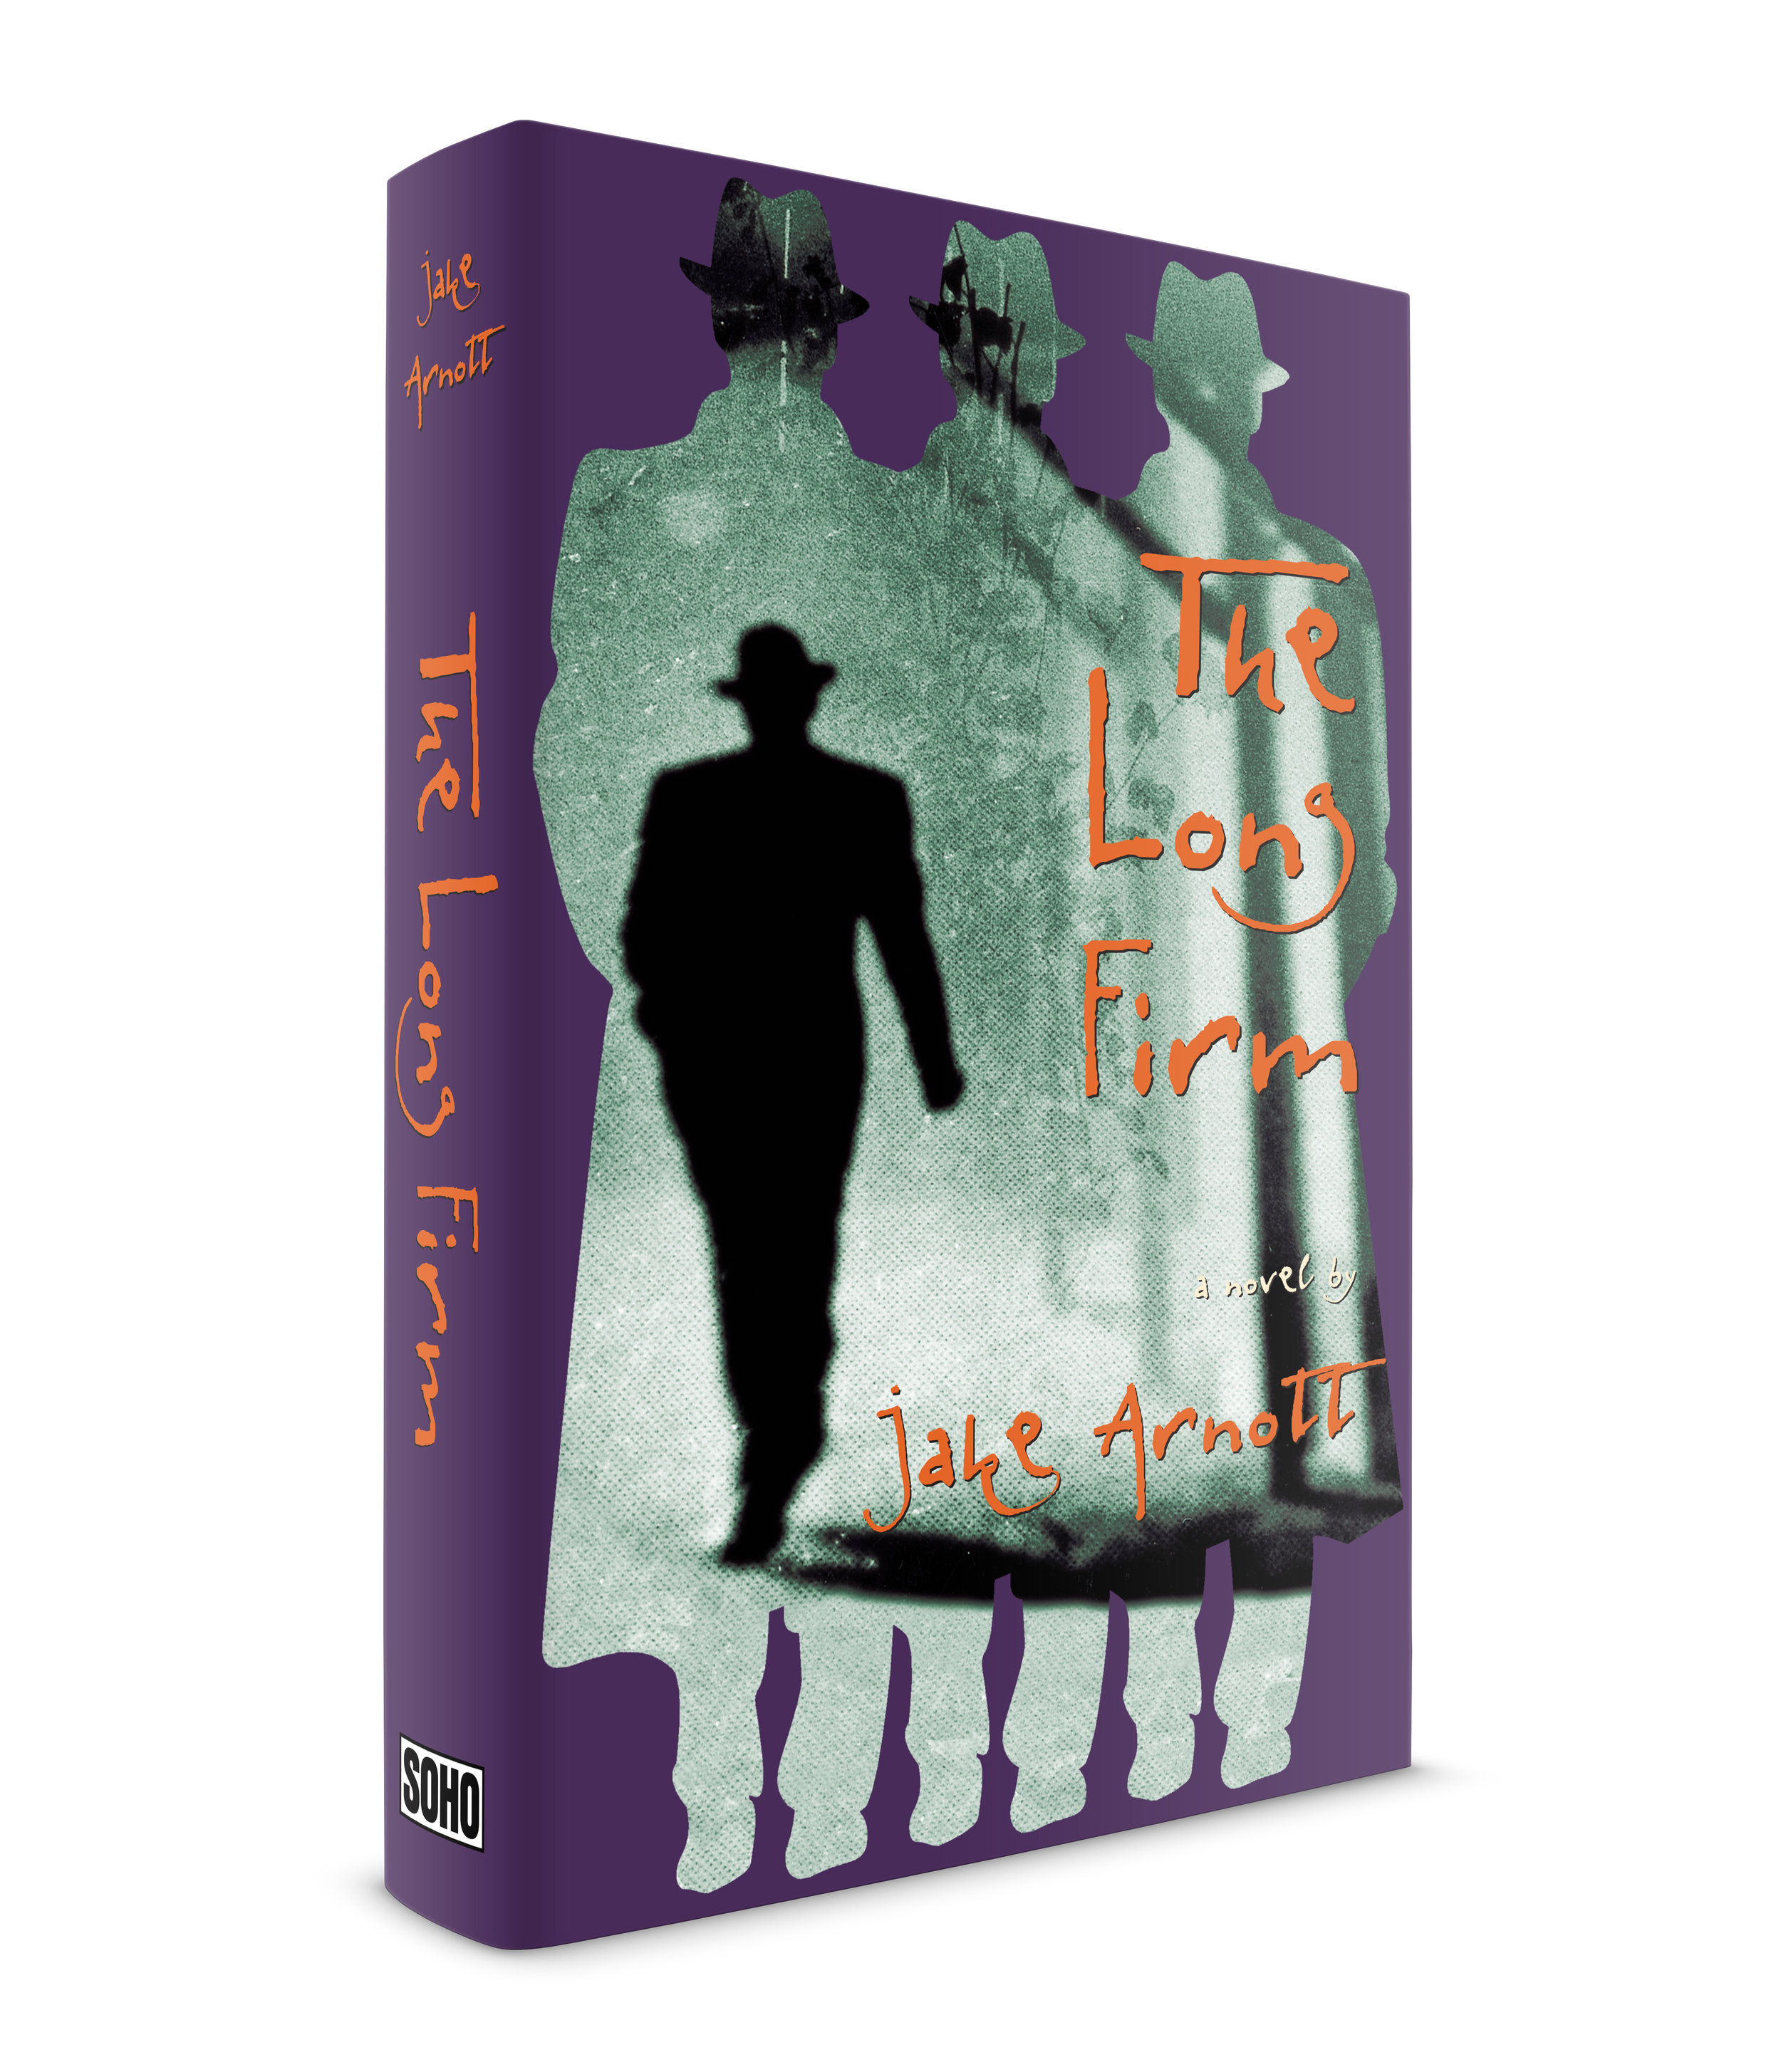 The Long Firm, a novel by Jake Arnott. Published by Soho Press. This was the first jacket of three that I designed for Jake's books. All three capture the seedy gangster lifestyle of London in the 1960s, including their interest in show business society. Harry Starks is the protagonist, a ruthless contemporary of the infamous Kray brothers. Evil, menacing yet a romantic. I always pictured Harry in shadow. Dark and imposing, and always with his boys close by. An excellent novel told in multiple voices. The book was so popular the BBC made a TV movie of it. A 4-part series I haven't seen but would love to.